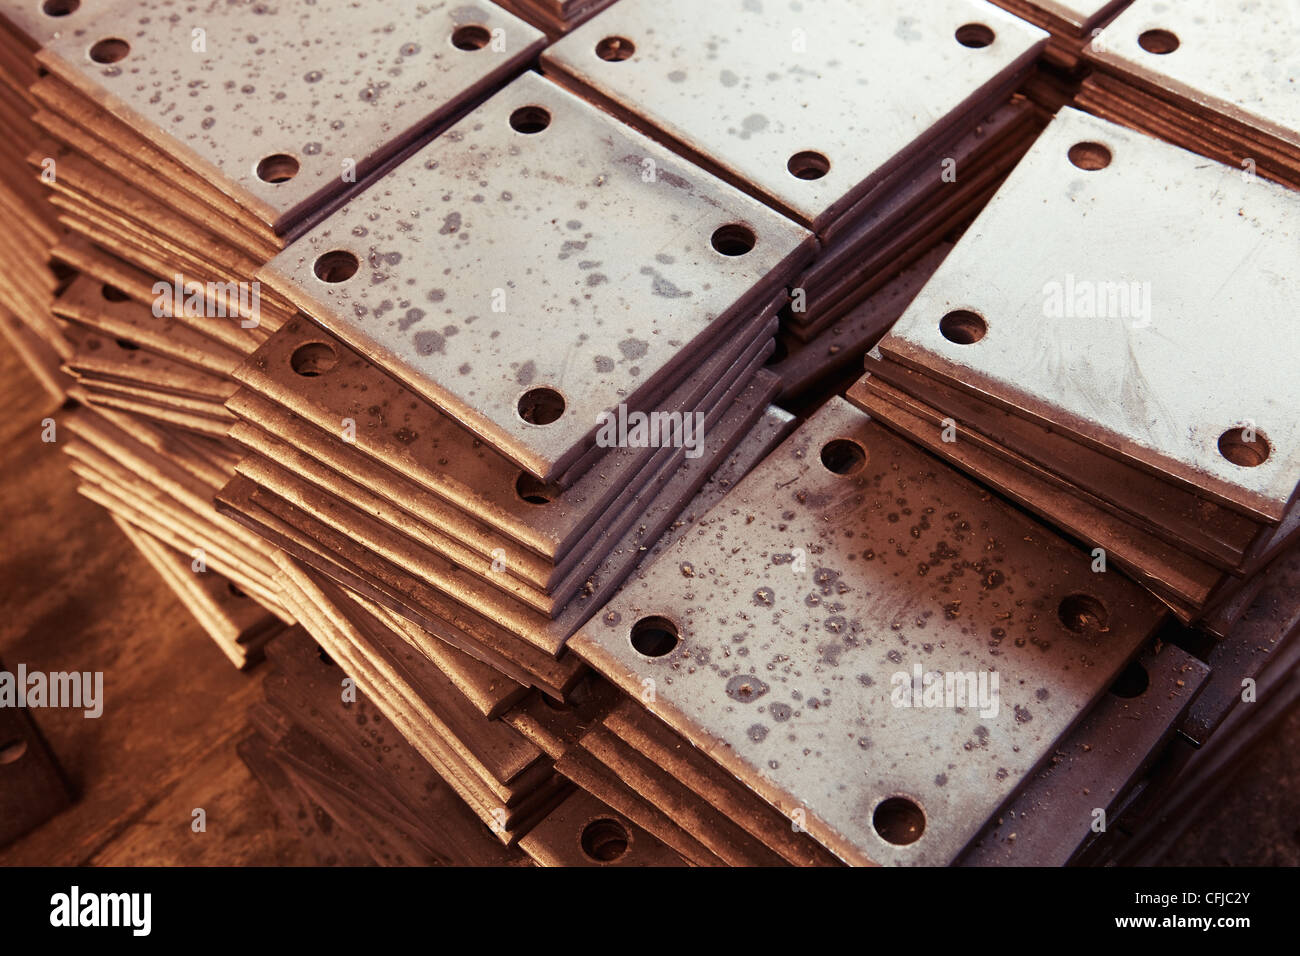 Rusty Grunge metal rectangle plaques avec des trous ronds en bois placées sur carte texturée Photo Stock